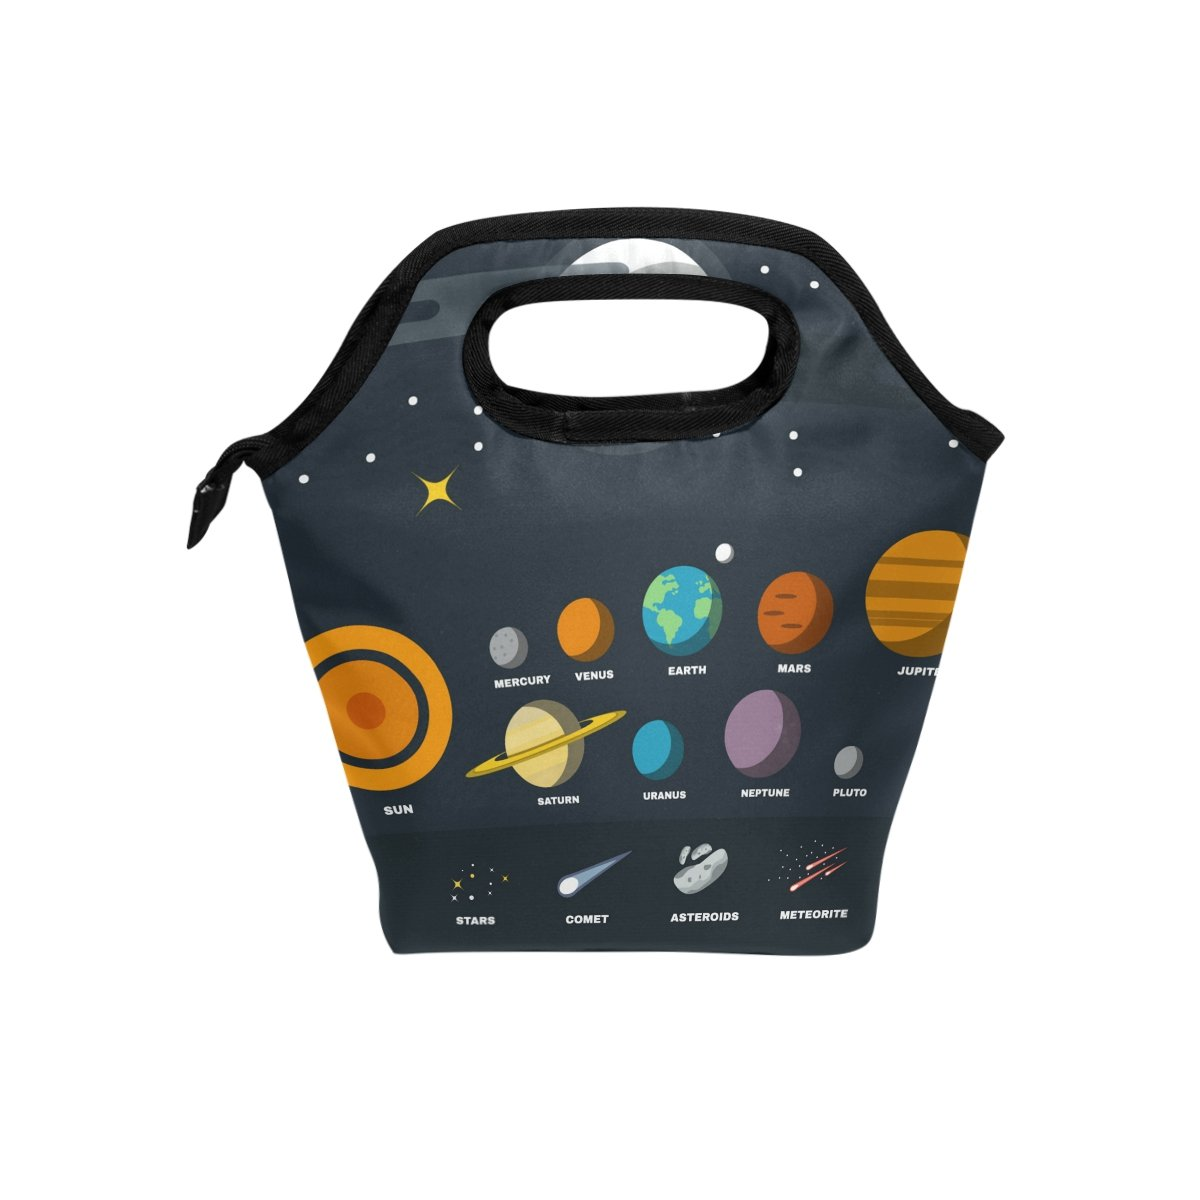 Lunch Tote Bag Solar System Handbag Lunchbox Food Container Gourmet Tote Cooler Warm Pouch For School Work Office Travel Outdoor By Saobao